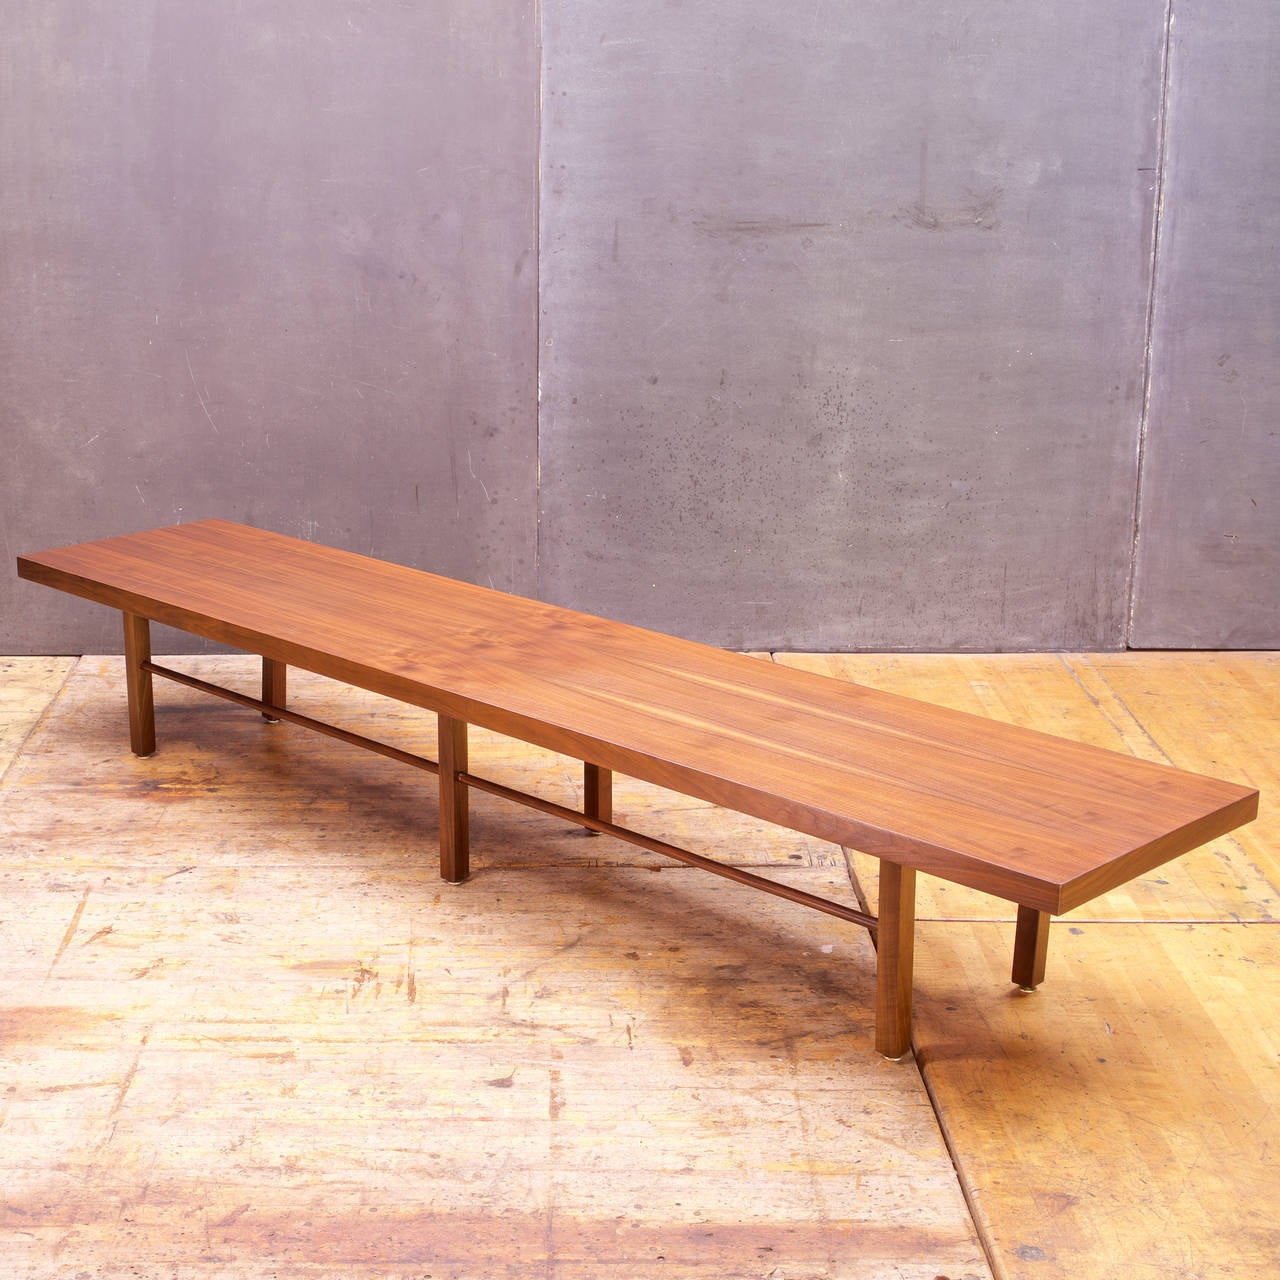 Very Long And Low Table / Shelf.